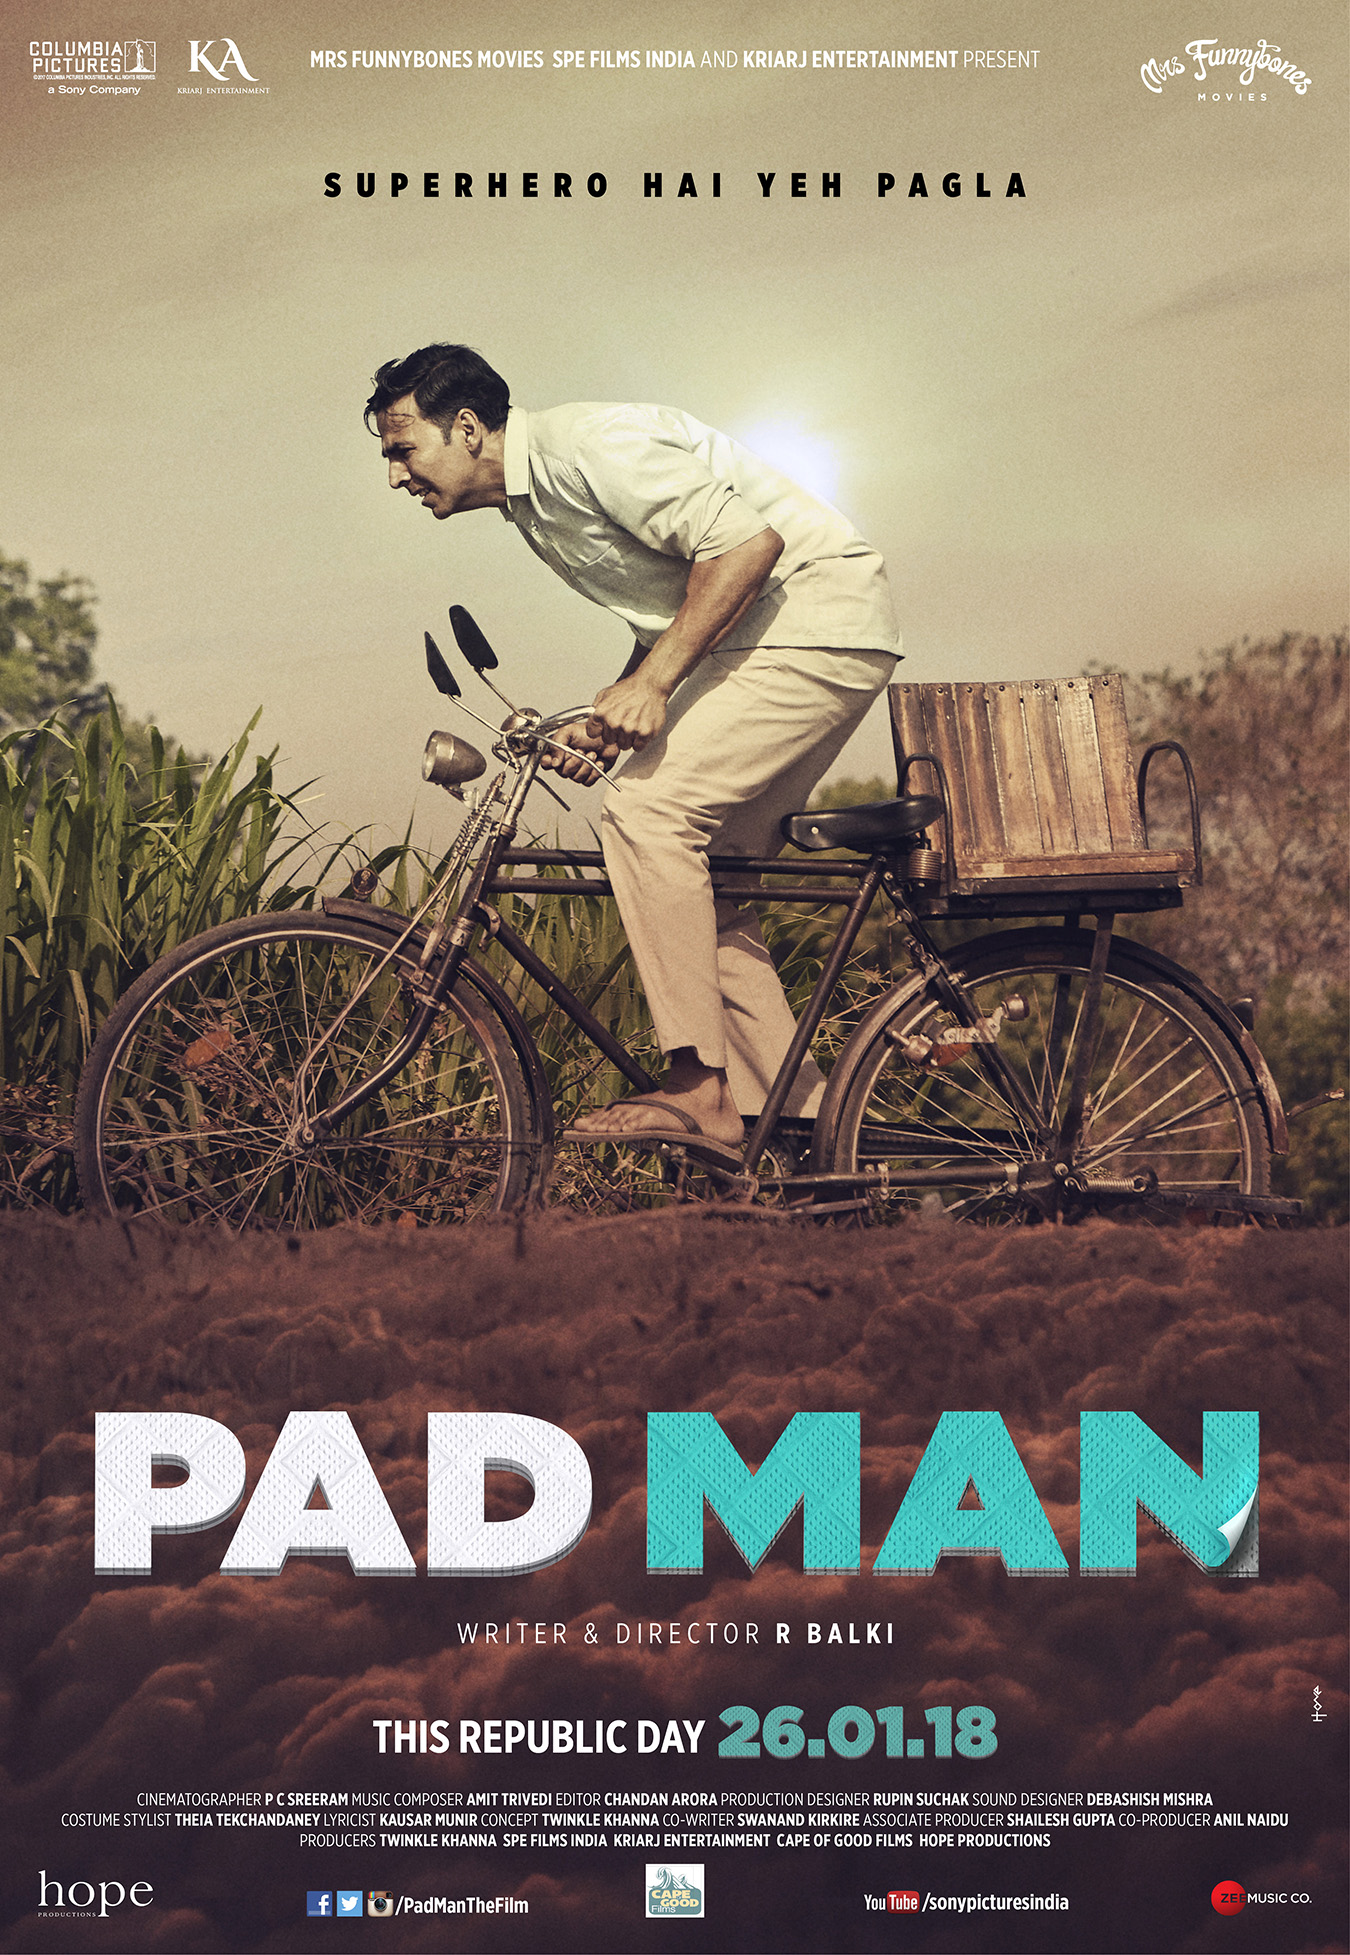 "NOT YOUR AVERAGE SUPERHERO FILM! HERE'S PRESENTING THE MOST PROGRESSIVE FAMILY ENTERTAINER ""PAD MAN"", IN CINEMAS 26TH JANUARY 2018"